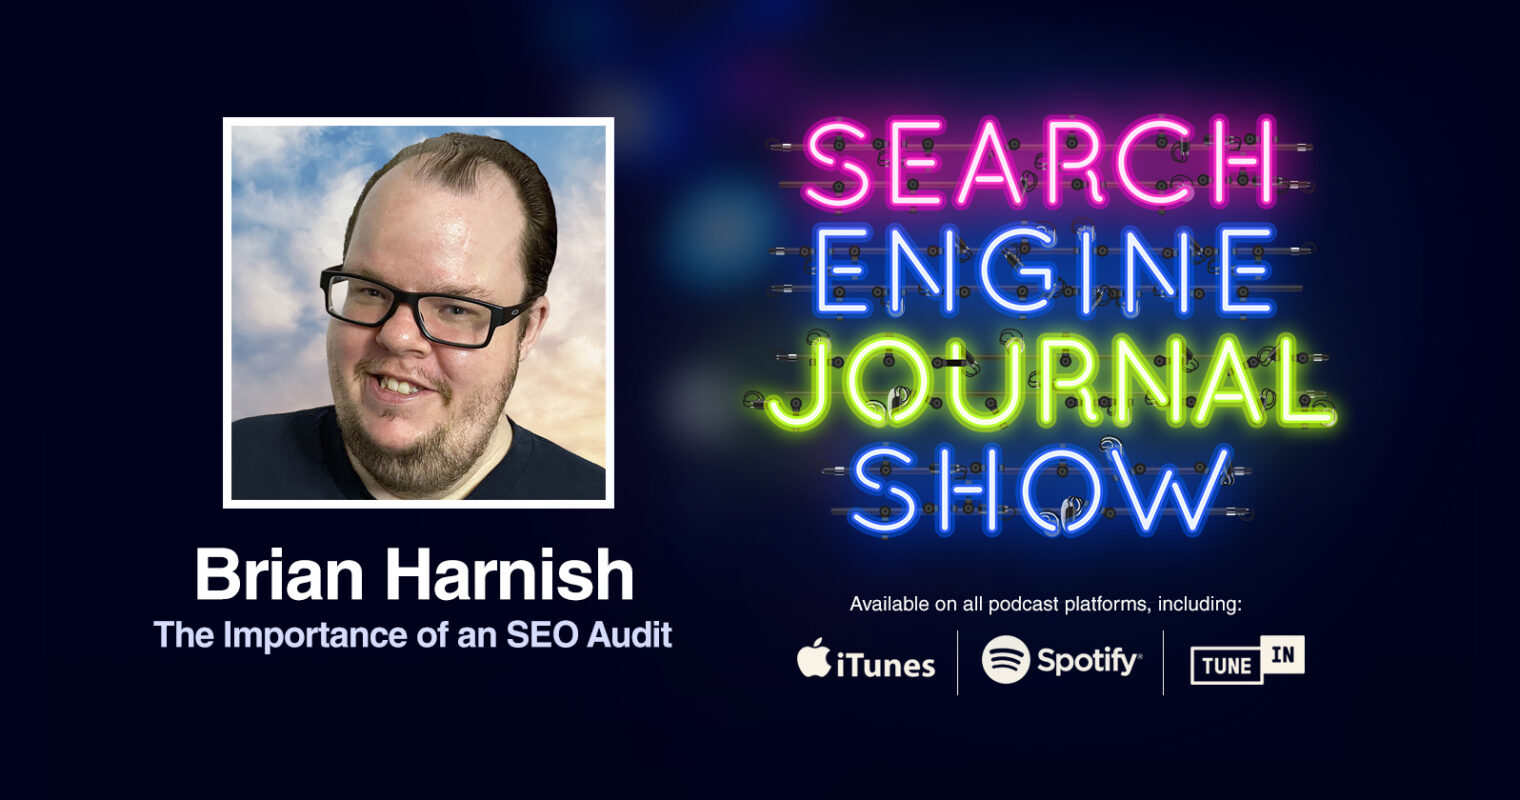 The Importance of an SEO Audit with Brian Harnish [PODCAST]